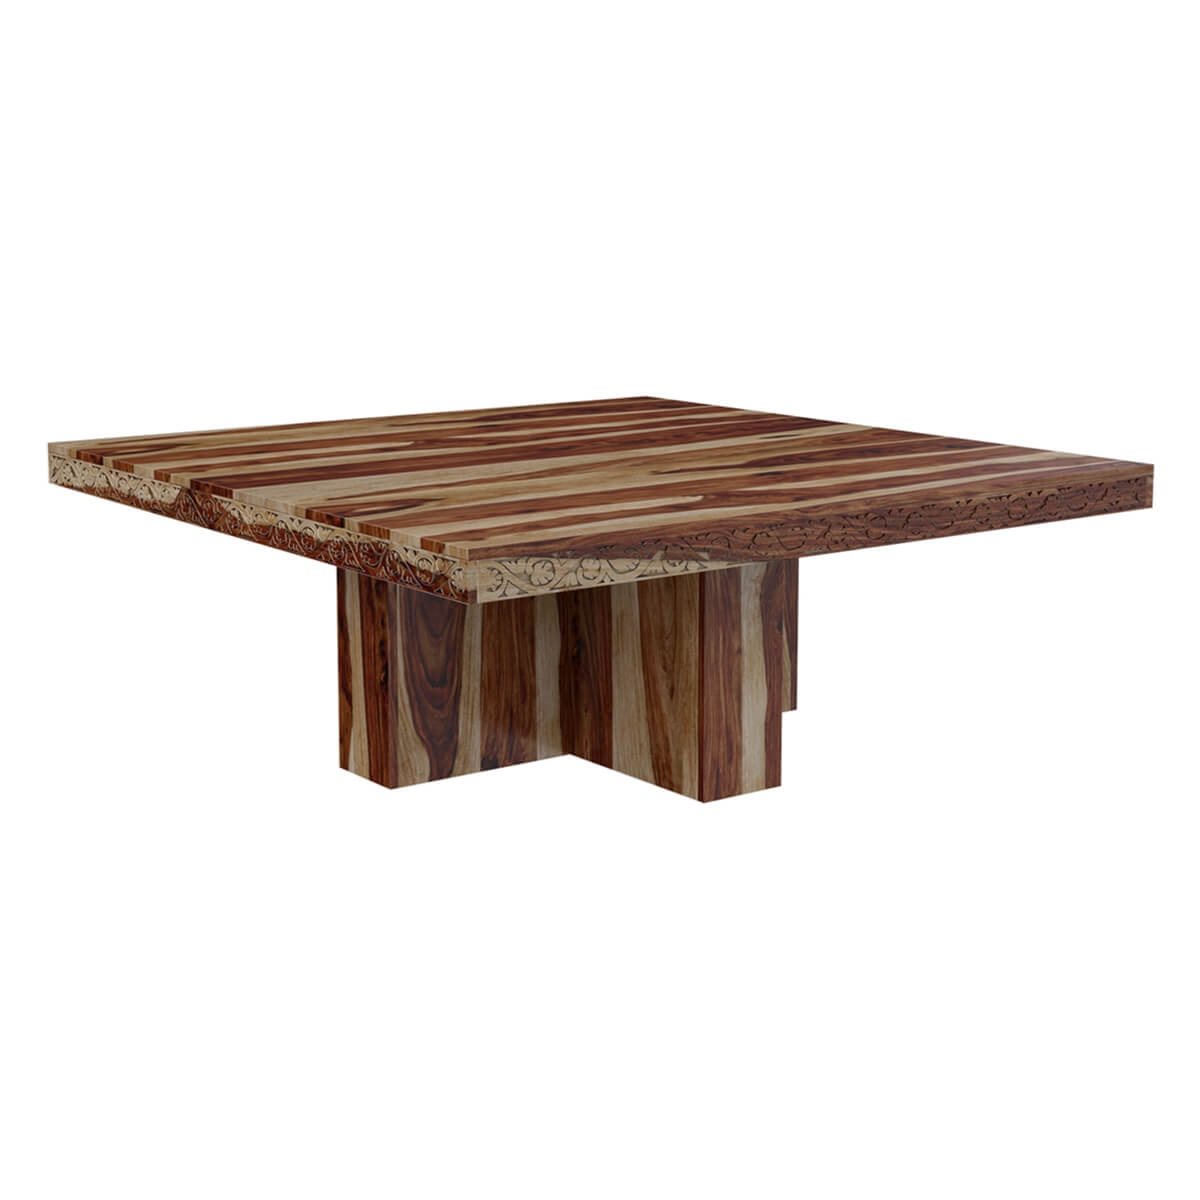 Dallas ranch solid wood pedestal rustic large square for Square dining room table